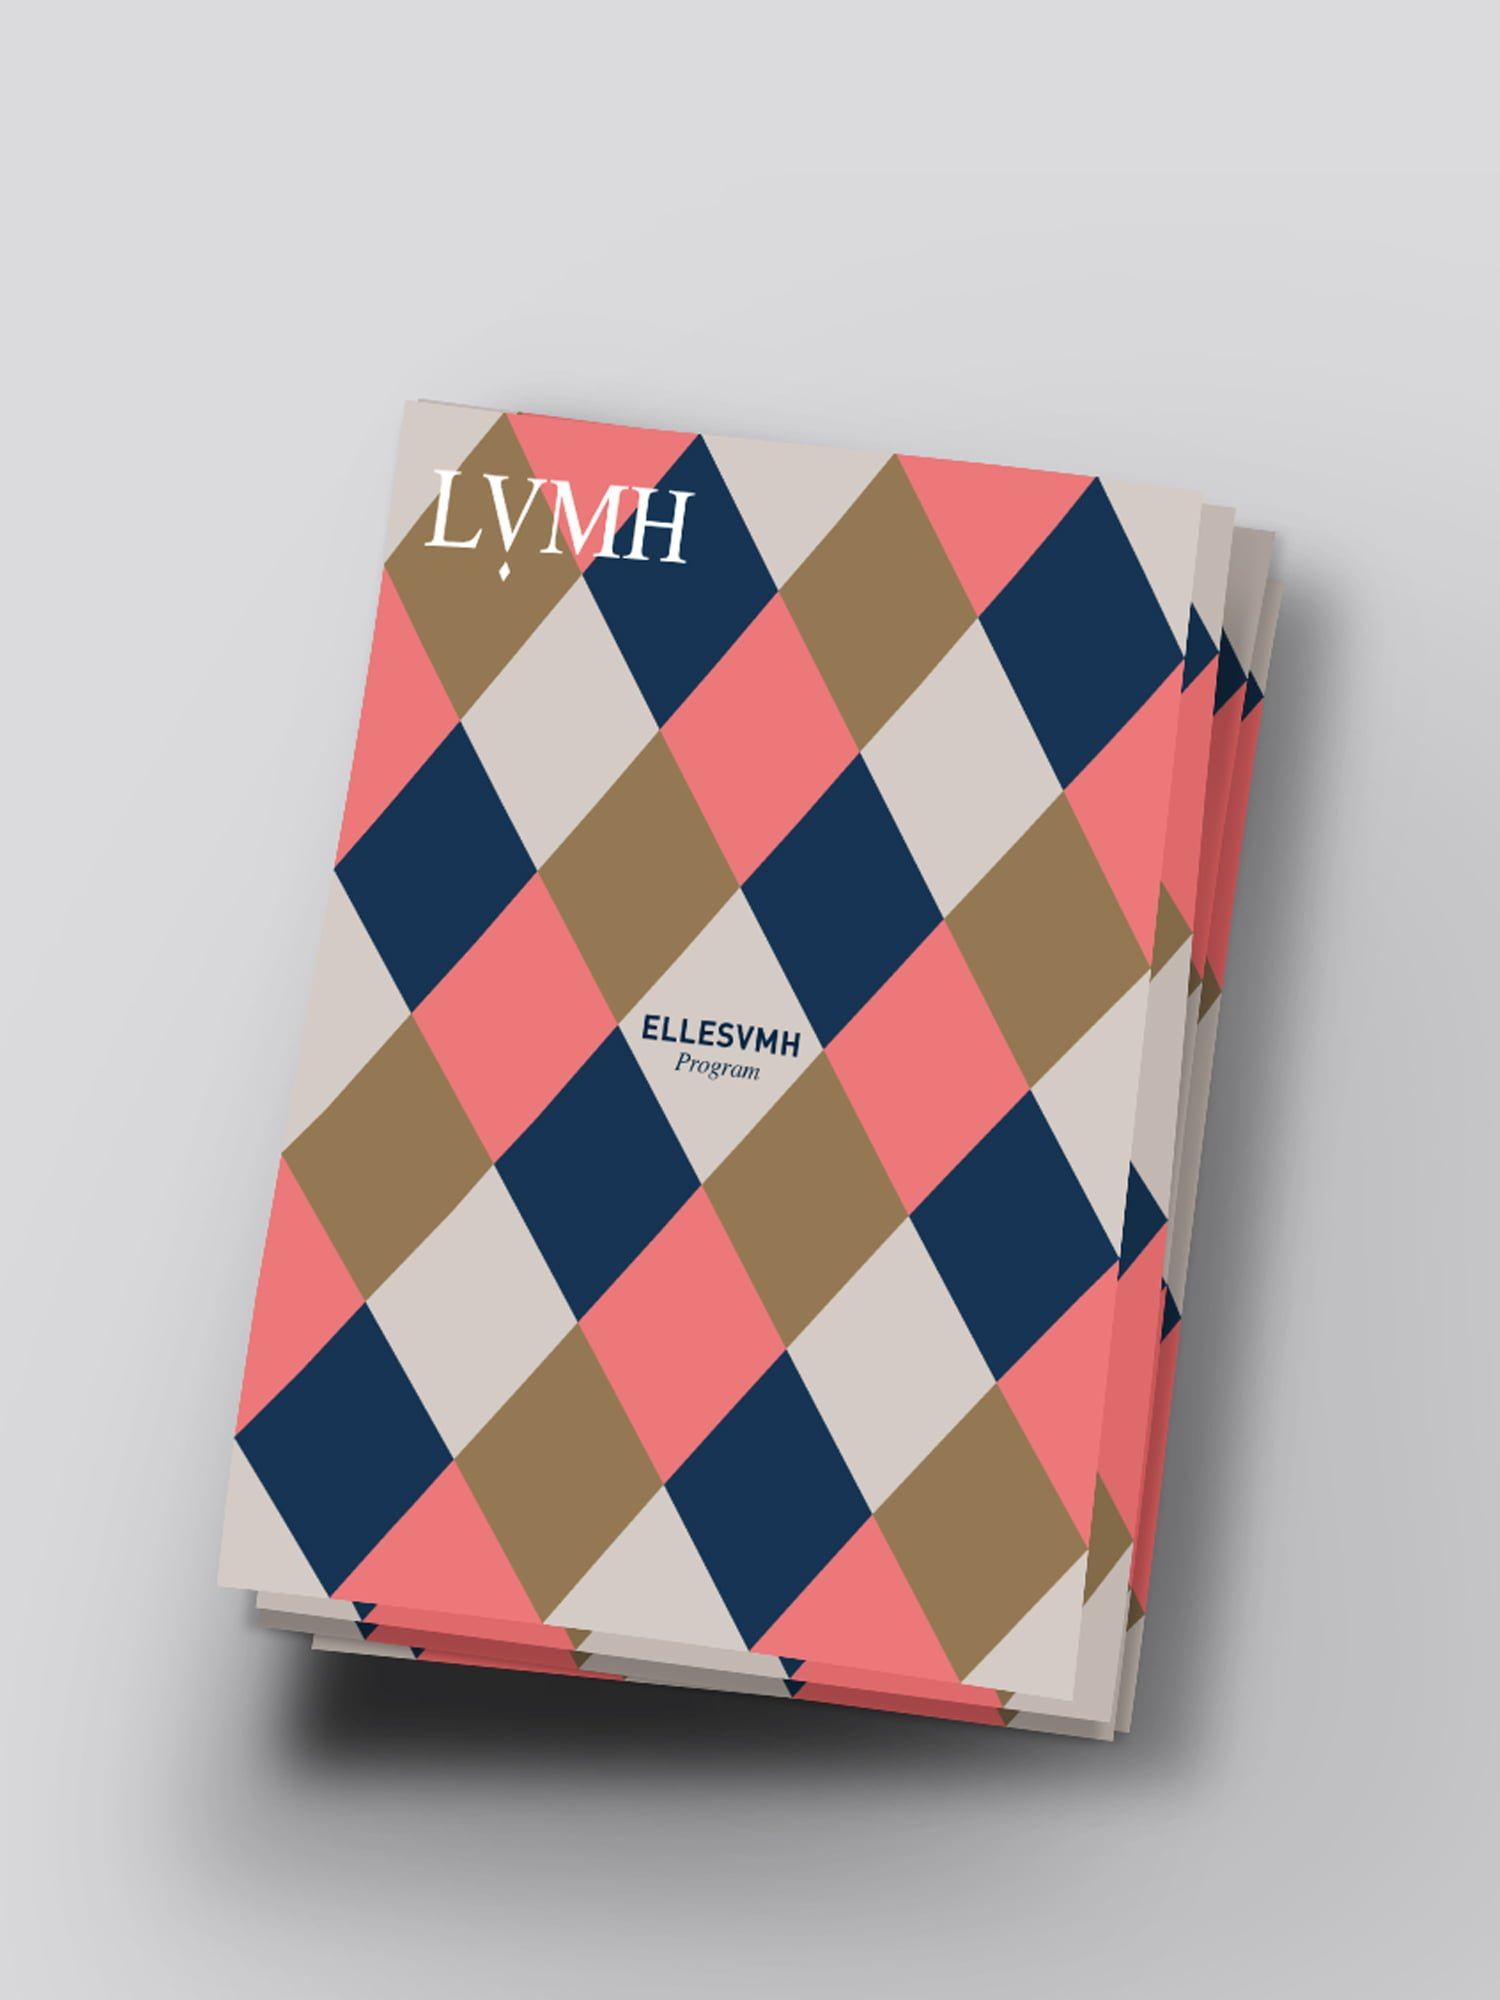 LVMH,Elles,aurelie bert,havas paris,corporate,luxe,design graphic